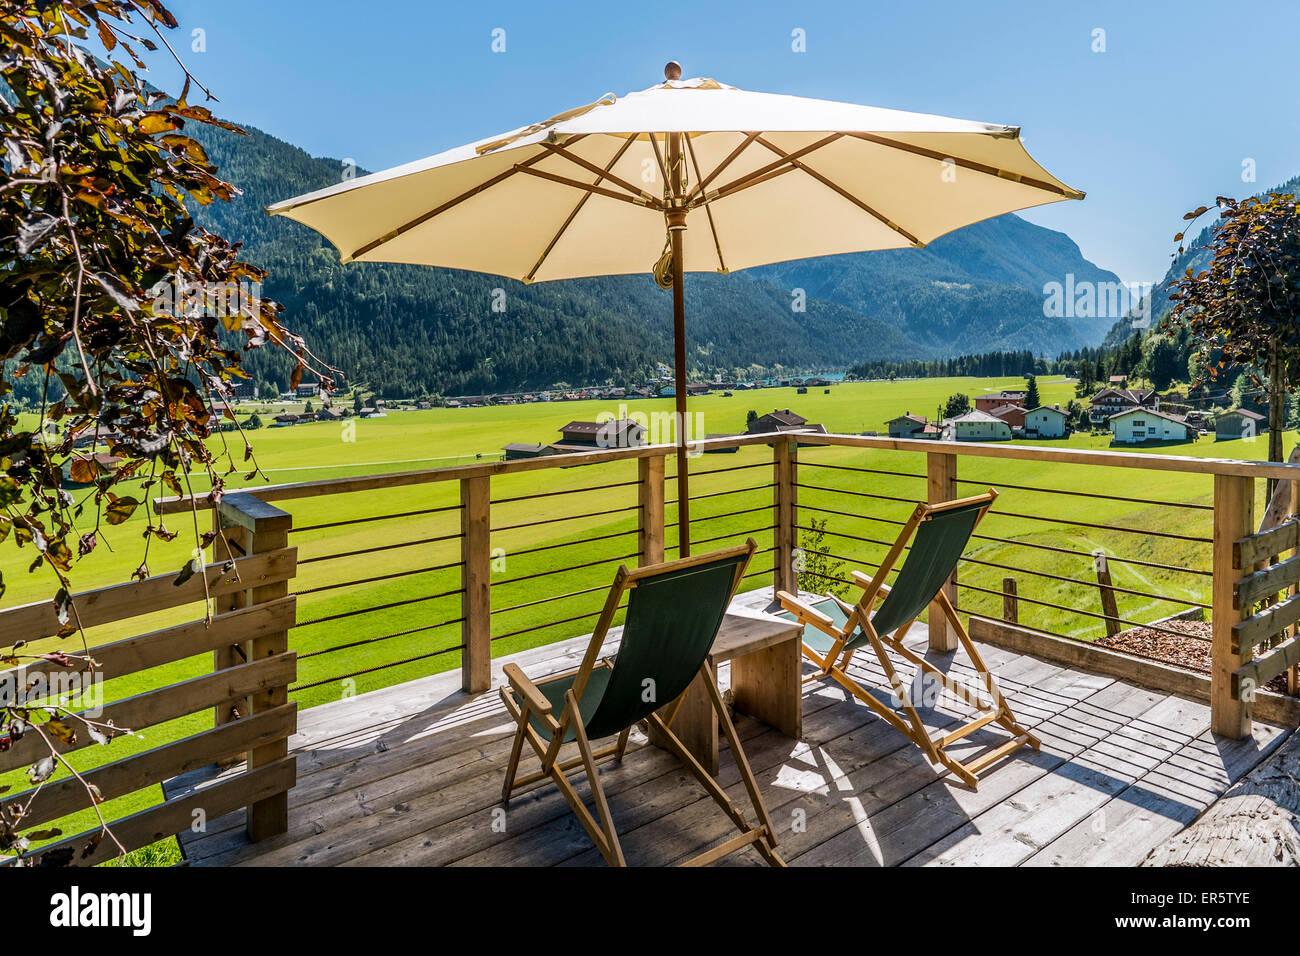 Deckchairs and sunshade on a terrace, lake Achensee and Achenkirch in background, Tyrol, Austria - Stock Image